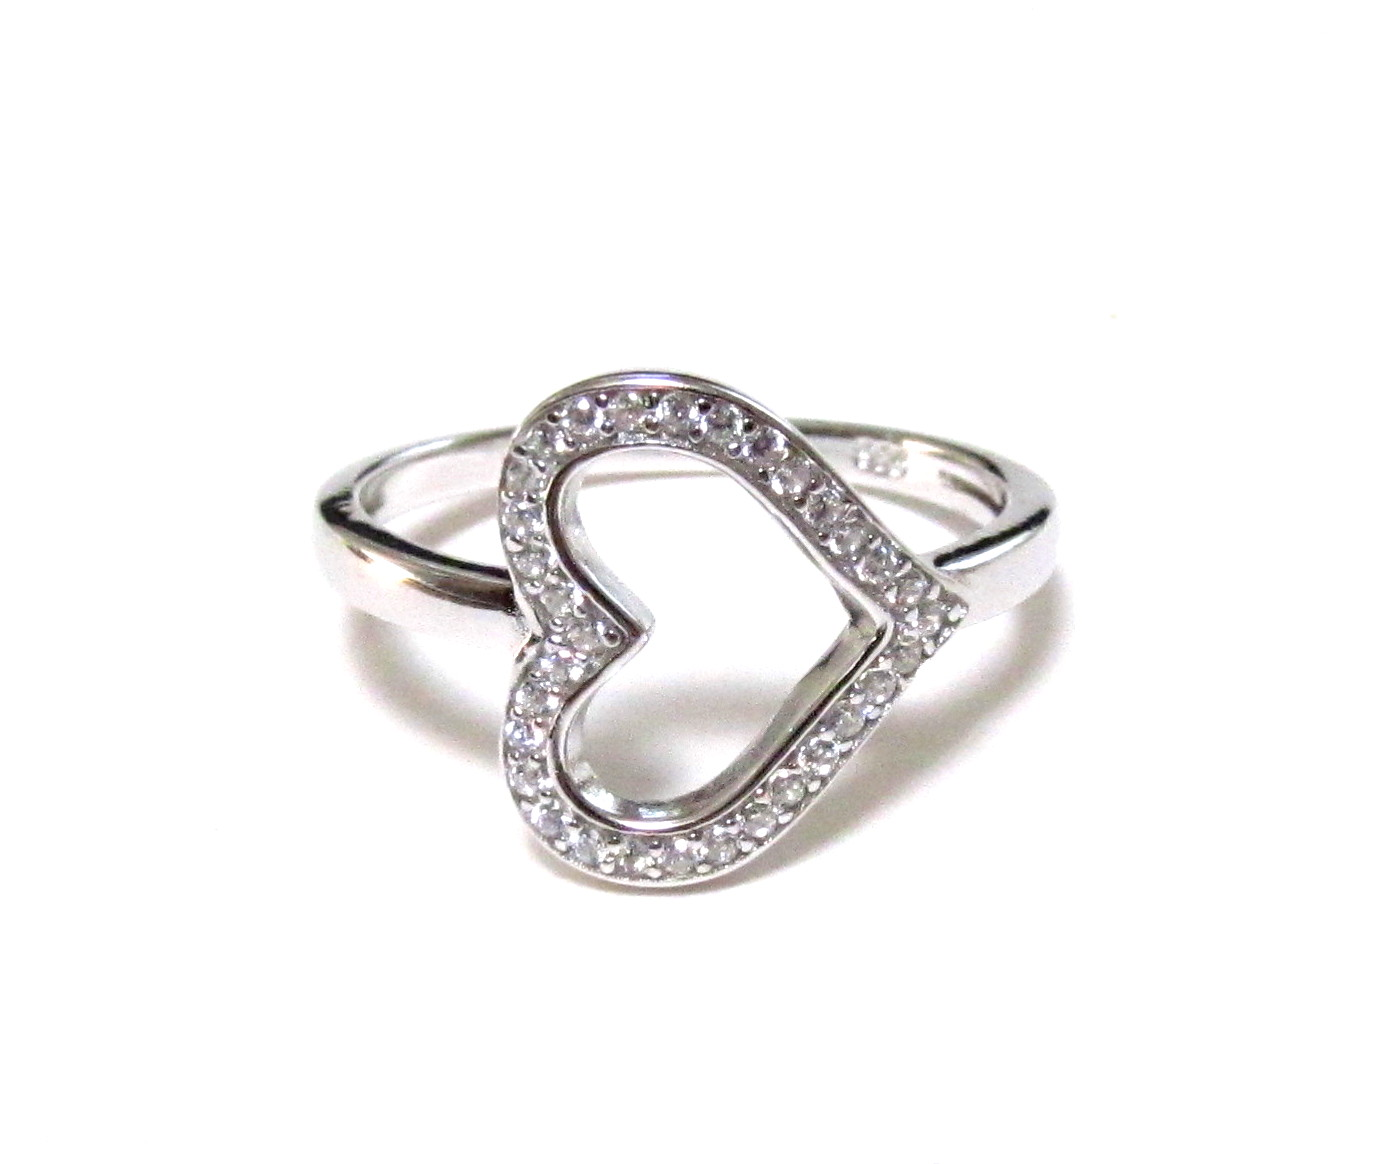 Brand new Sideways Heart RIng-Rhodium Over 925 Sterling Silver Ring With CZ  TO13